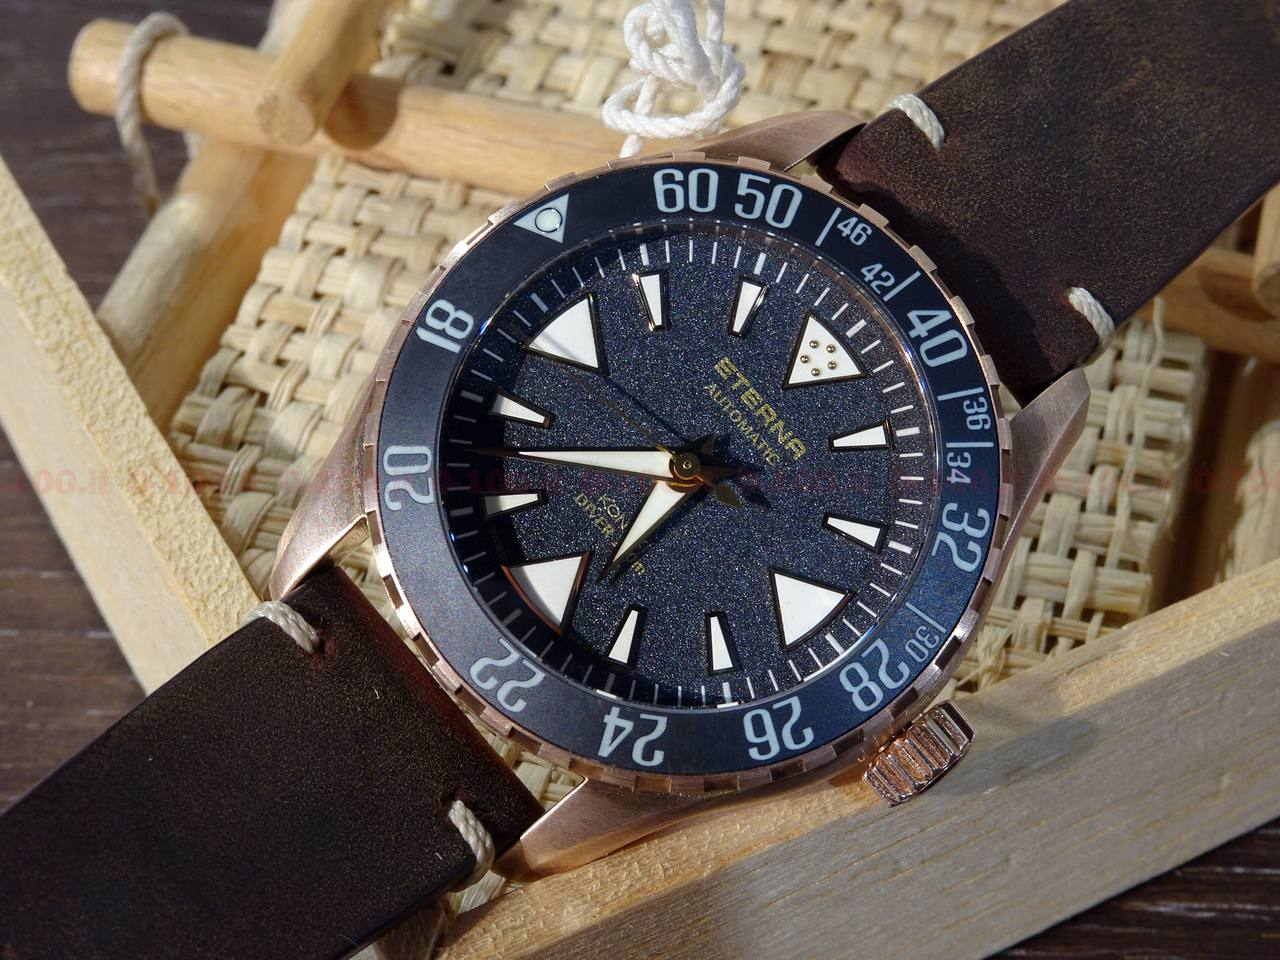 baselworld-2017-ETERNA KONTIKI BRONZE MANUFACTURE LIMITED EDITION REF. 1291.78.49.1422-prezzo-price_0-1002